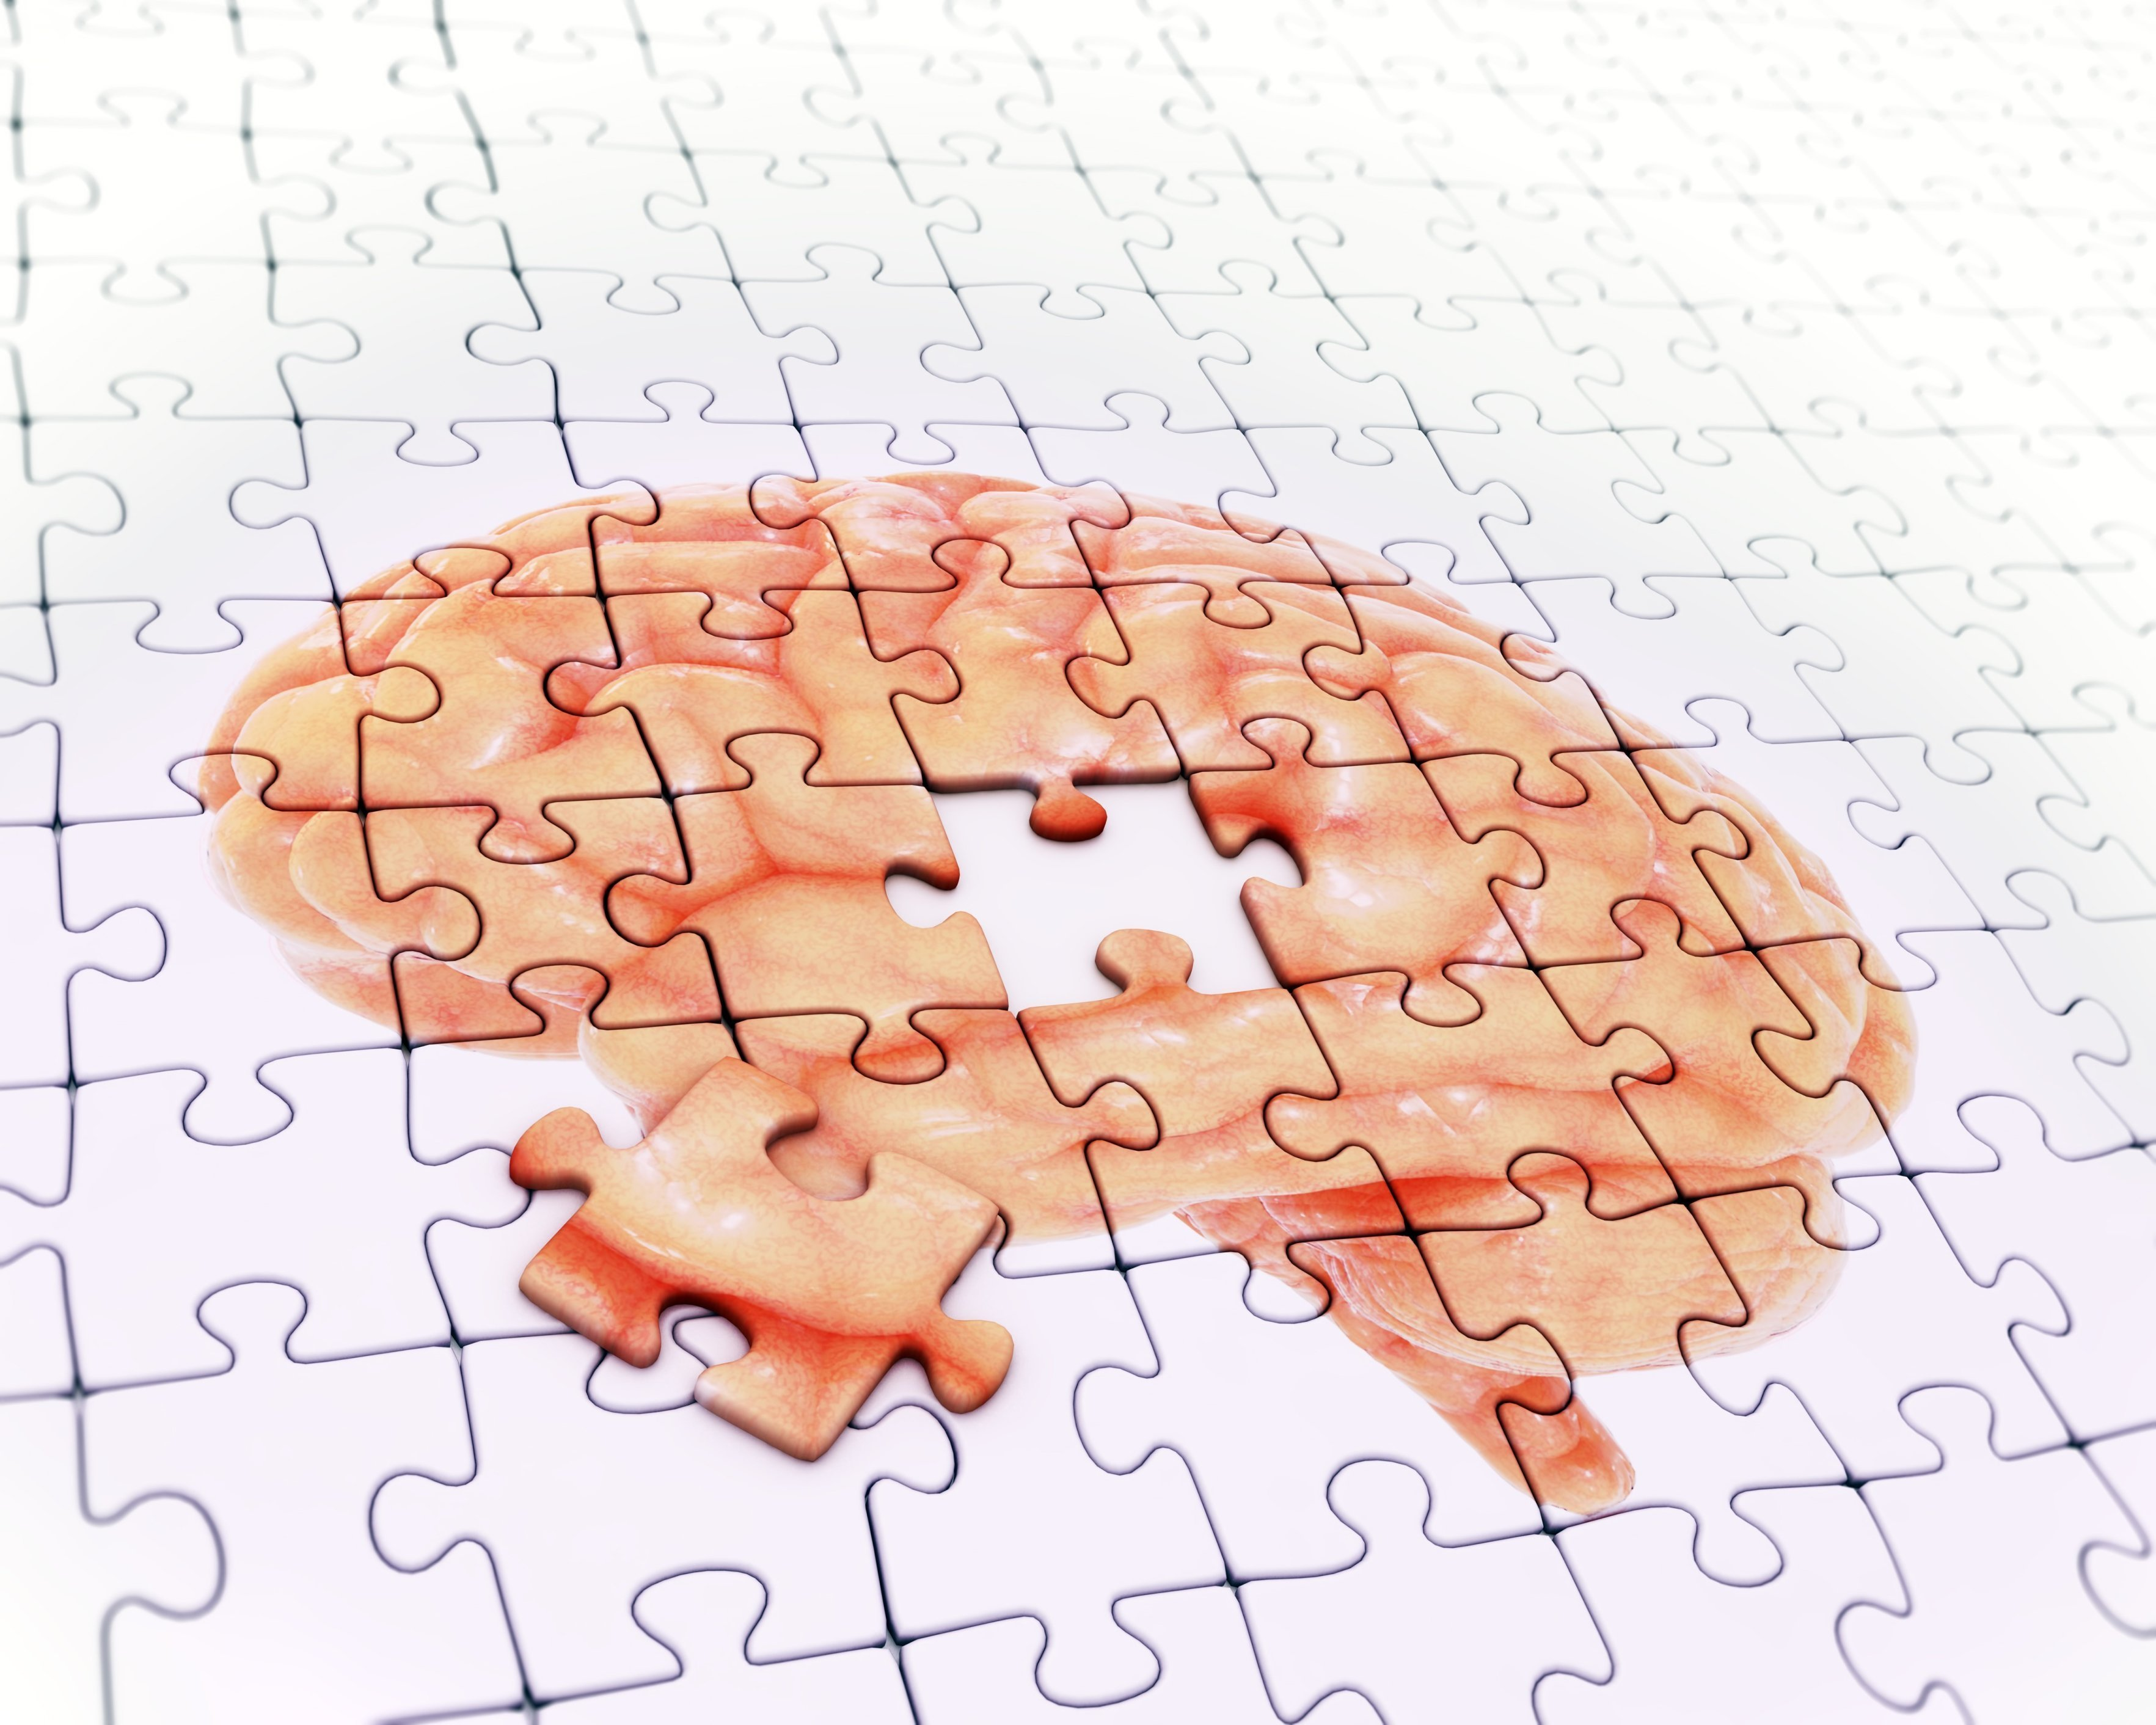 Blocked enzyme reverses schizophrenia-like symptoms